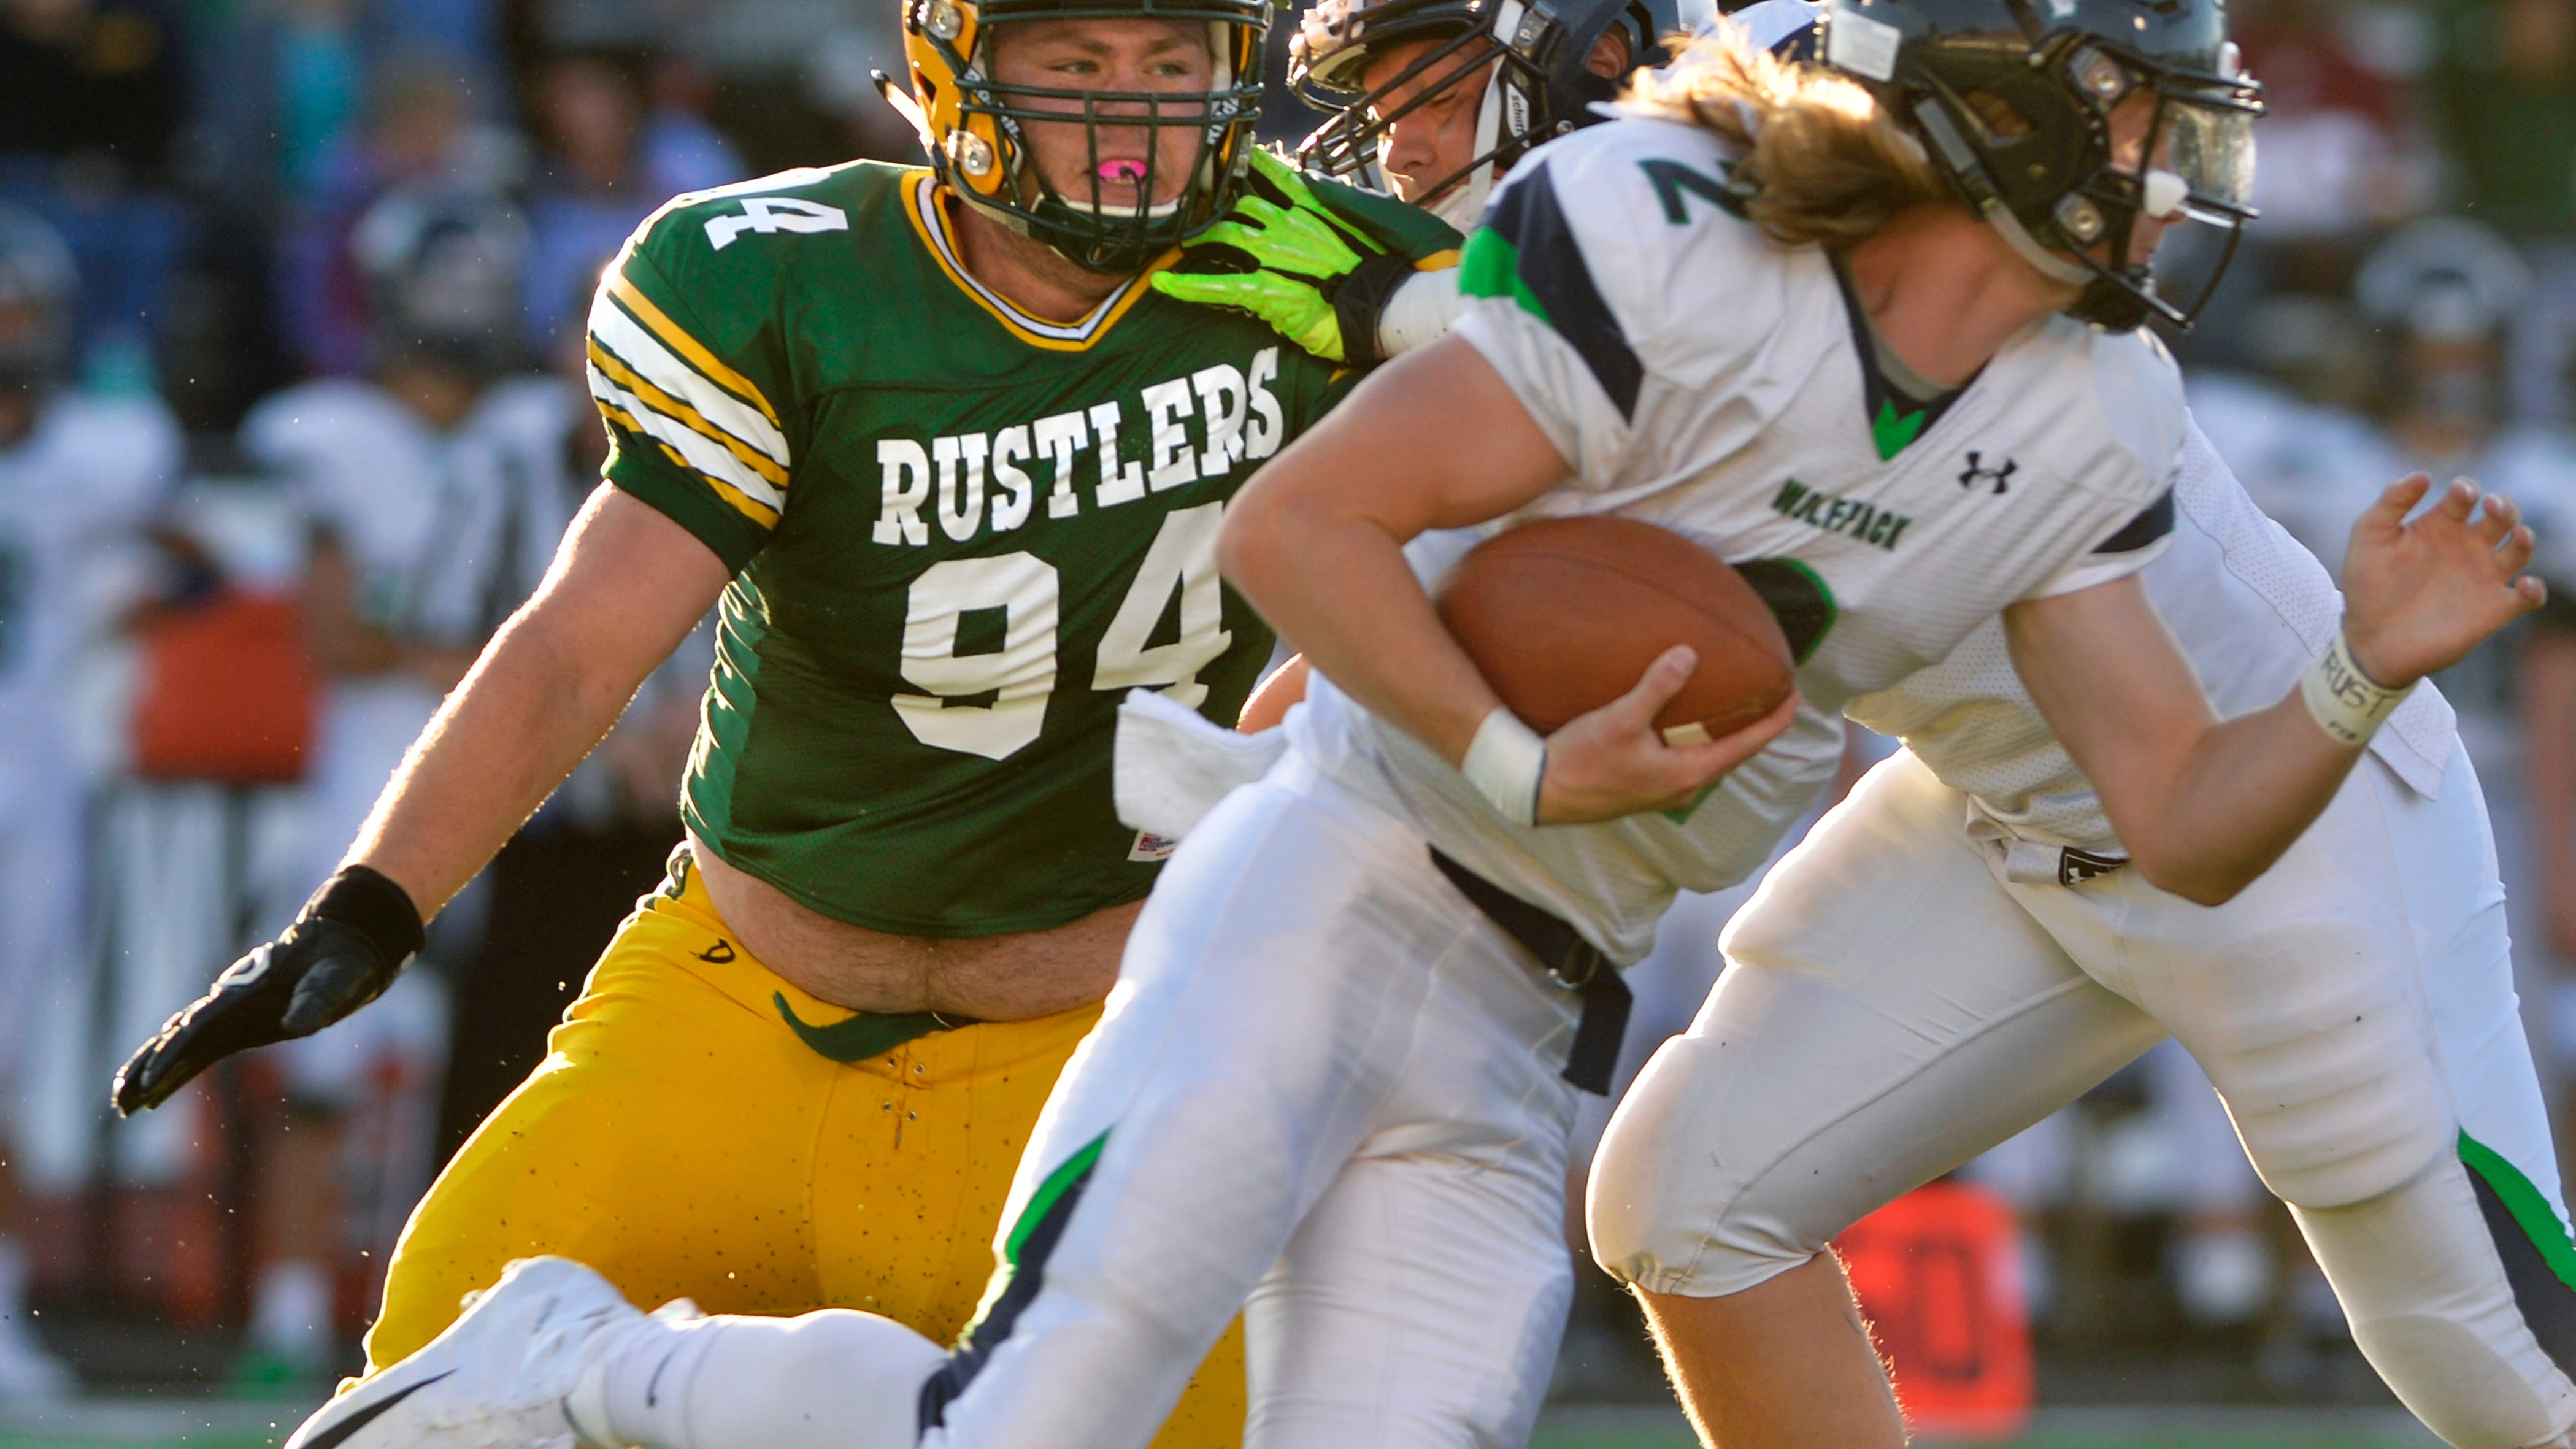 The all-star football game will take place in Butte this July.